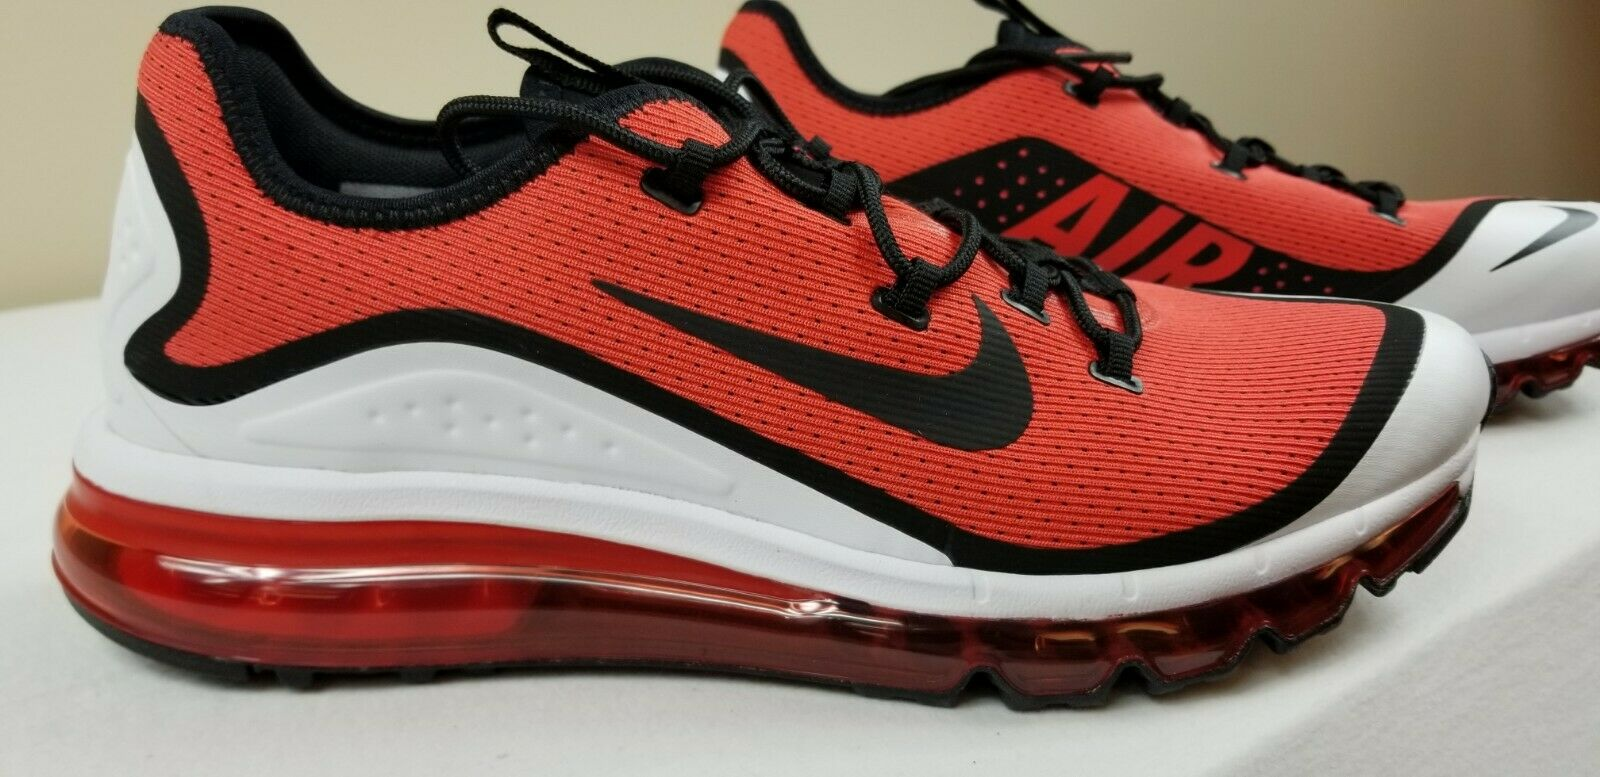 180 Nike Air Max More Mens Size 12 Running shoes Red 2019 AR1944 600 Rare